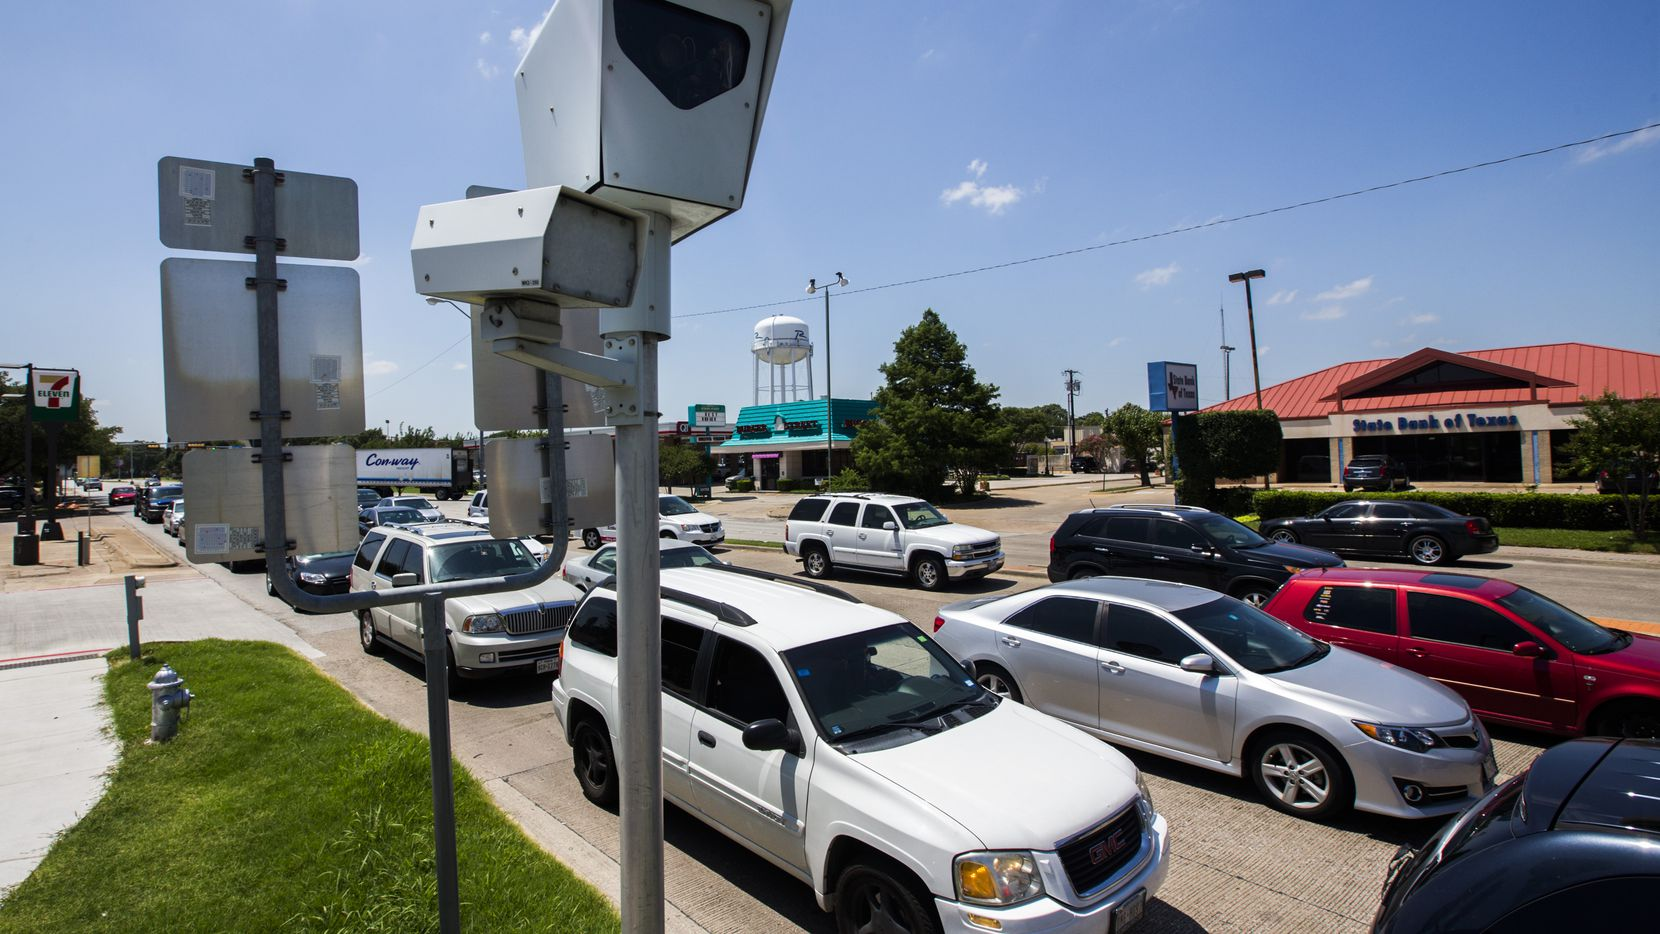 A red light camera is posted on Wednesday, July 6, 2016 at the intersection of Belt Line Road and southbound Highway 75 in Richardson, Texas. On Friday, May 17, 2019, the Texas Senate passed a bill that would outlaw these cameras across the state. (Ashley Landis/The Dallas Morning News)